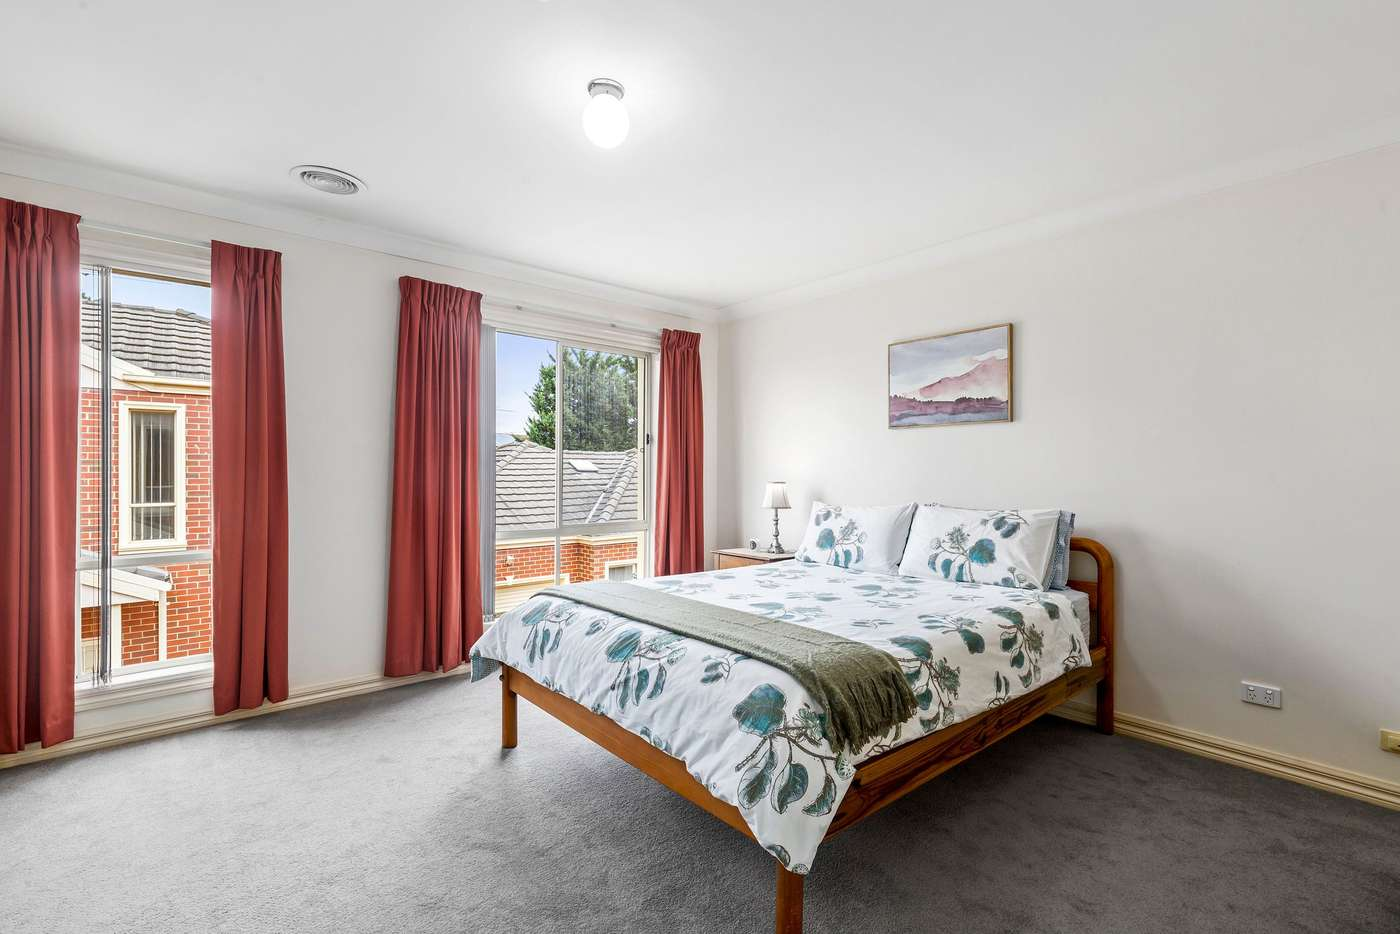 Sixth view of Homely townhouse listing, 5/53-55 Teague Street, Niddrie VIC 3042